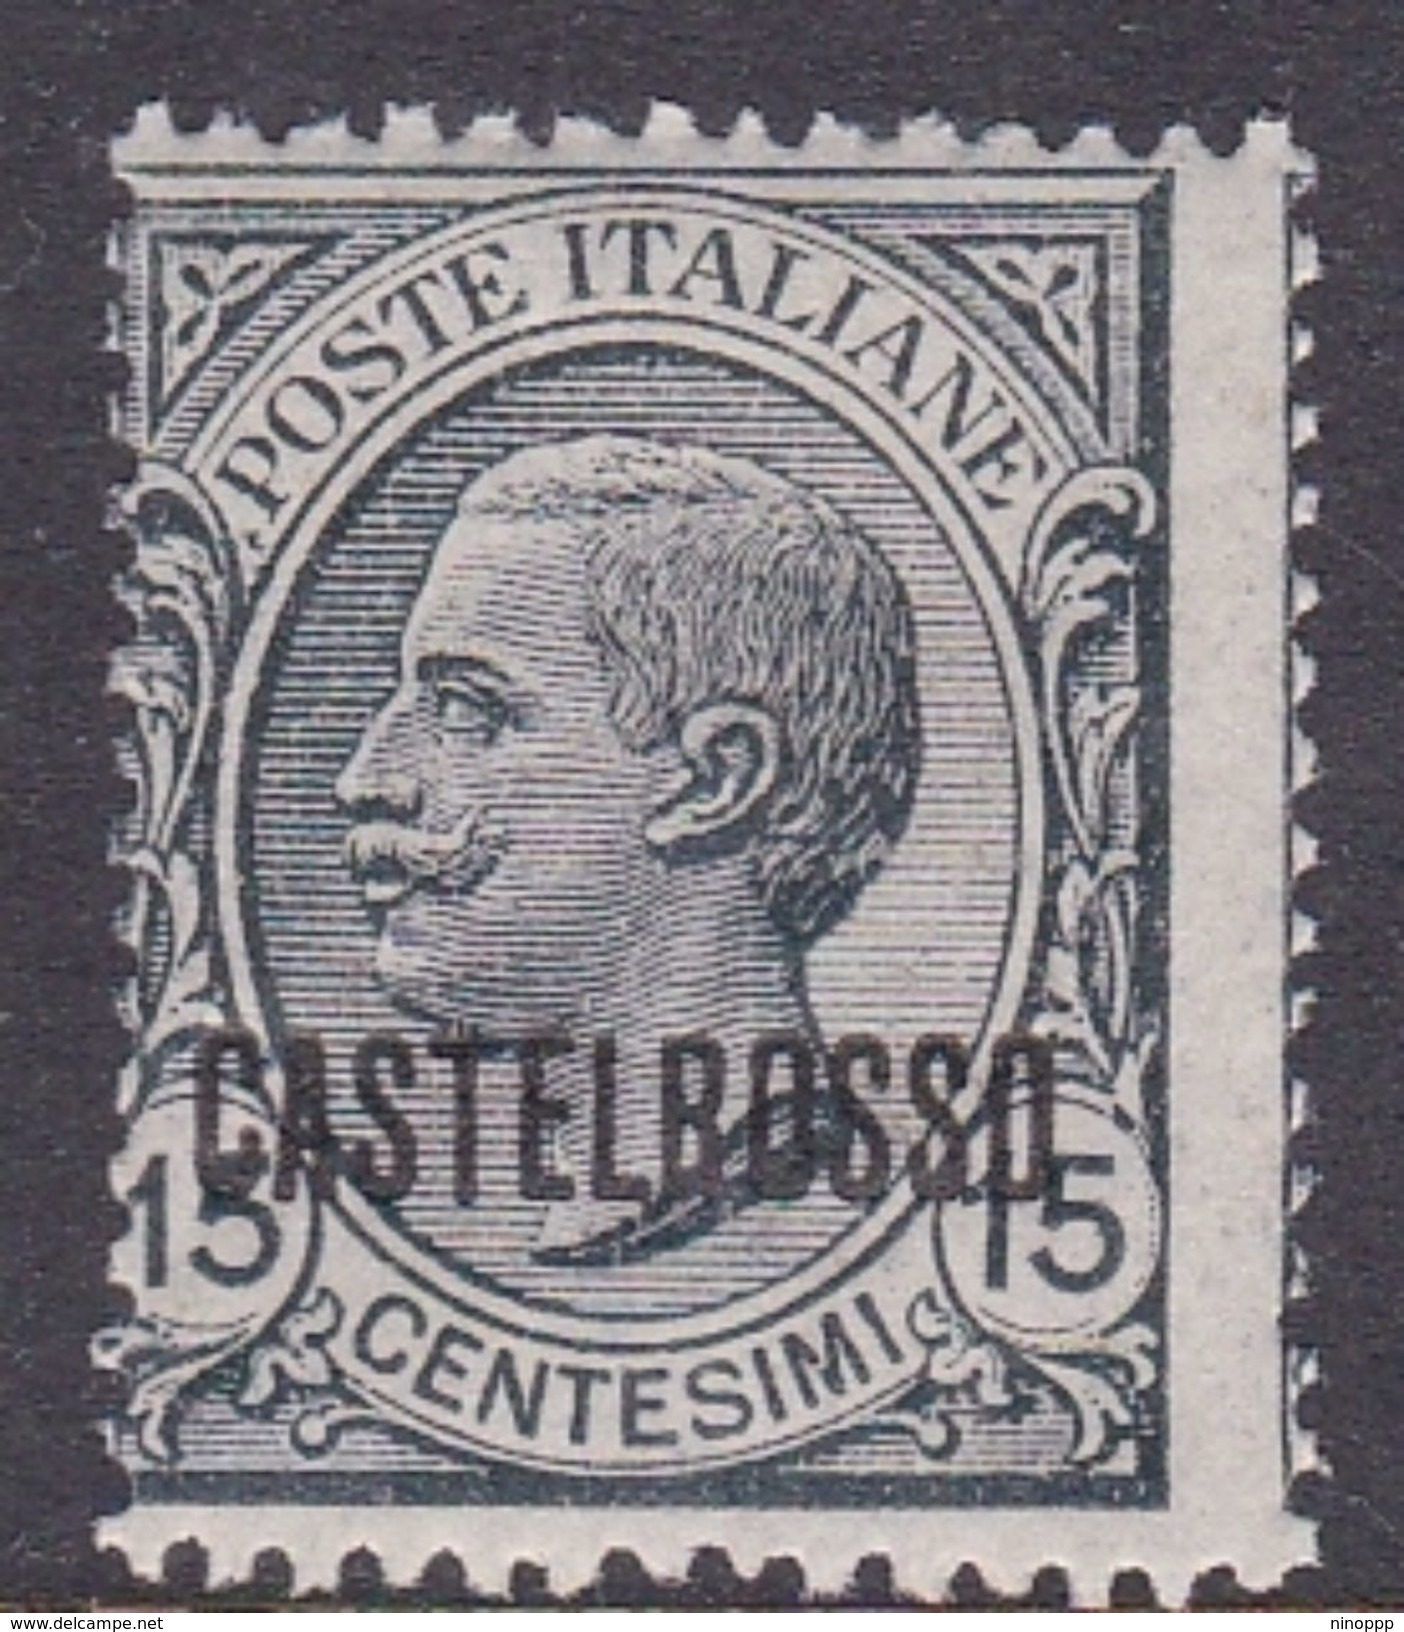 Italy-Colonies And Territories-Castelrosso S3 1922 15c Slate MNH - Italy